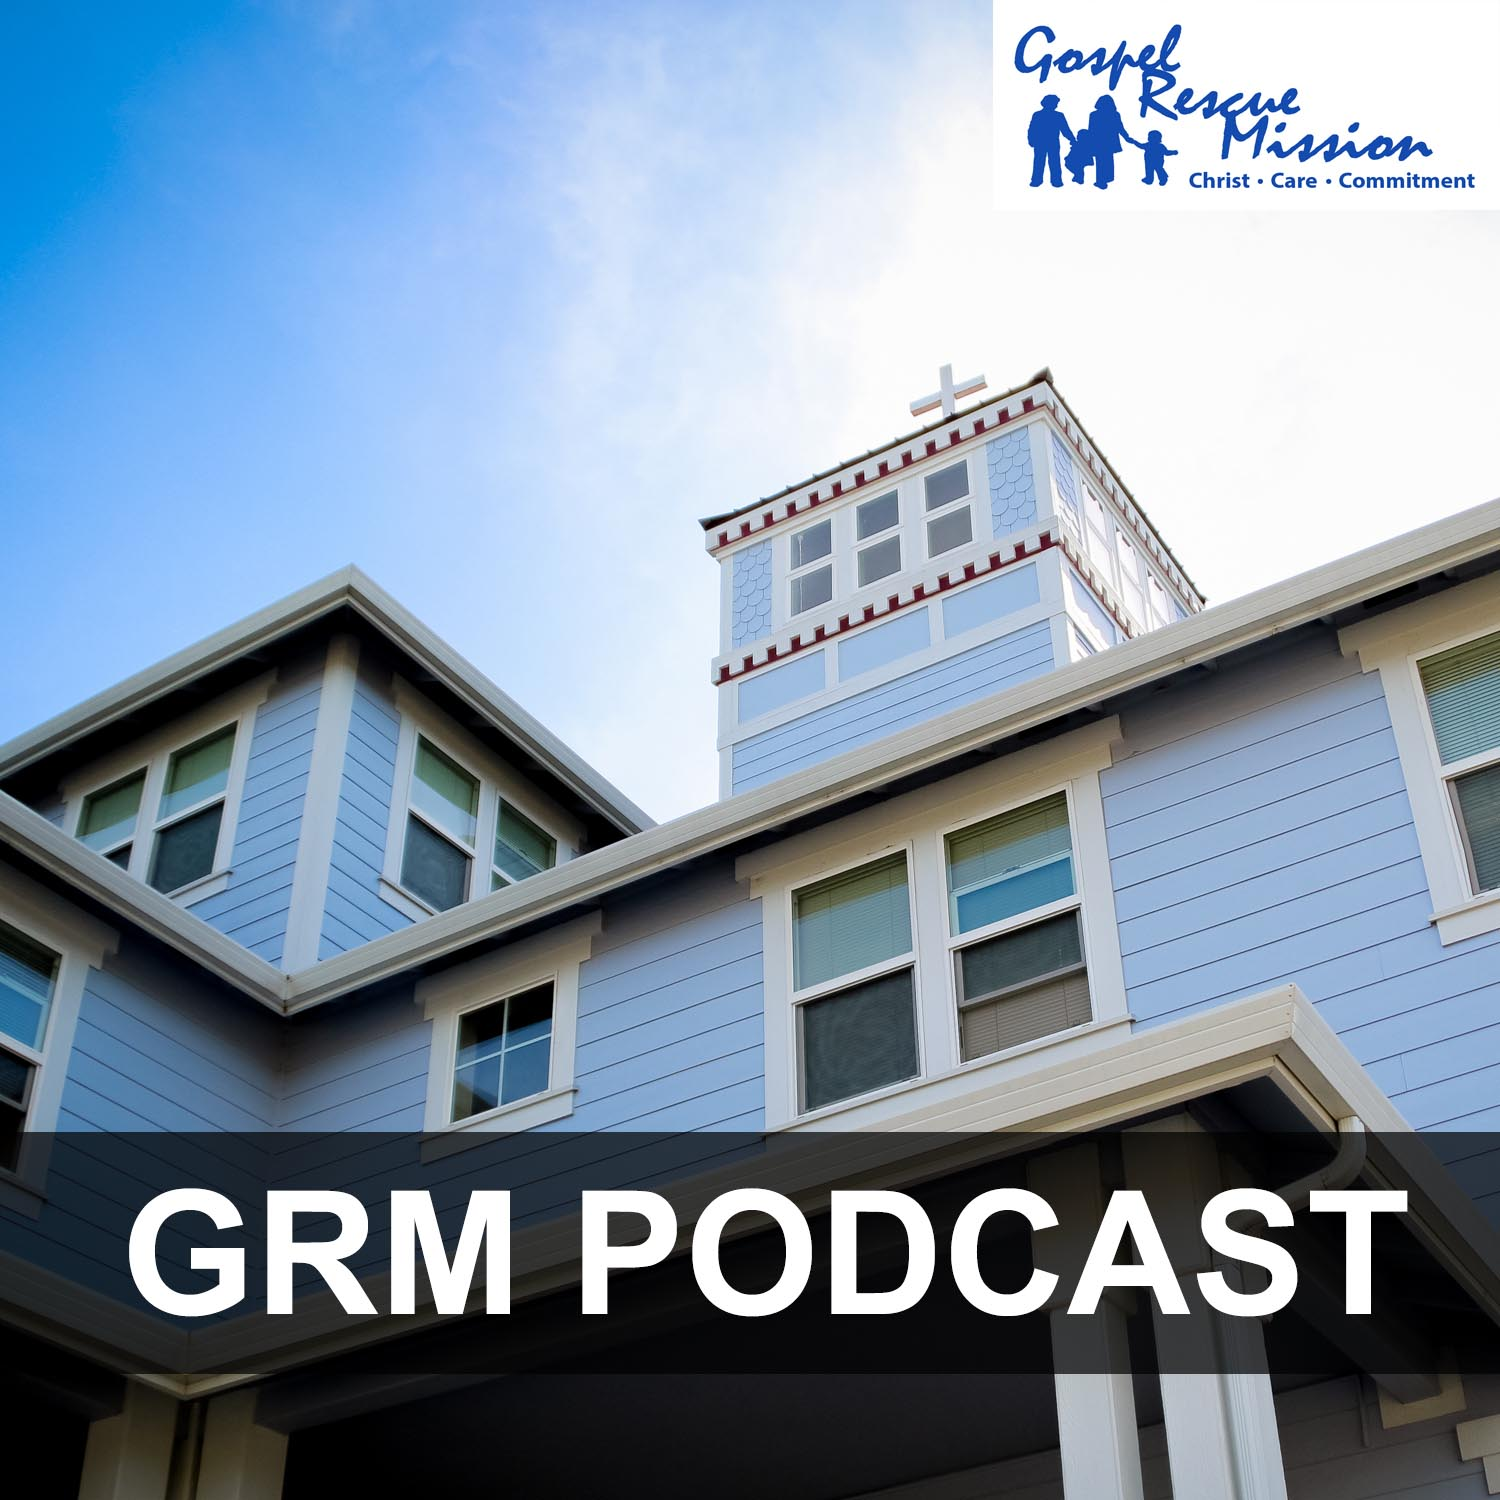 GRM Podcast Episode 1: Work Search